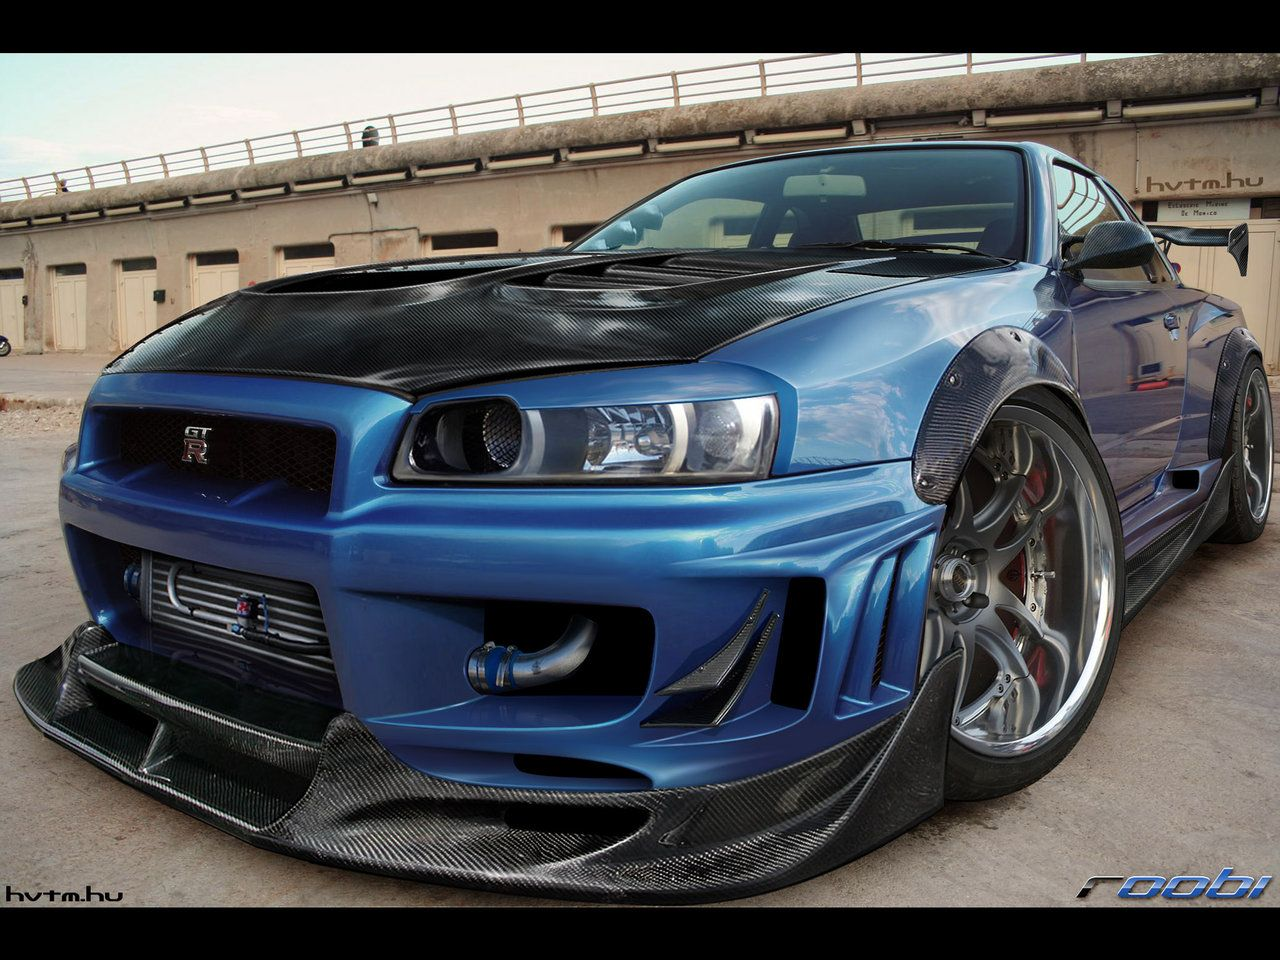 cool cars, nissan, r34, gt-r, virtual tuning, skyline | wallpapers